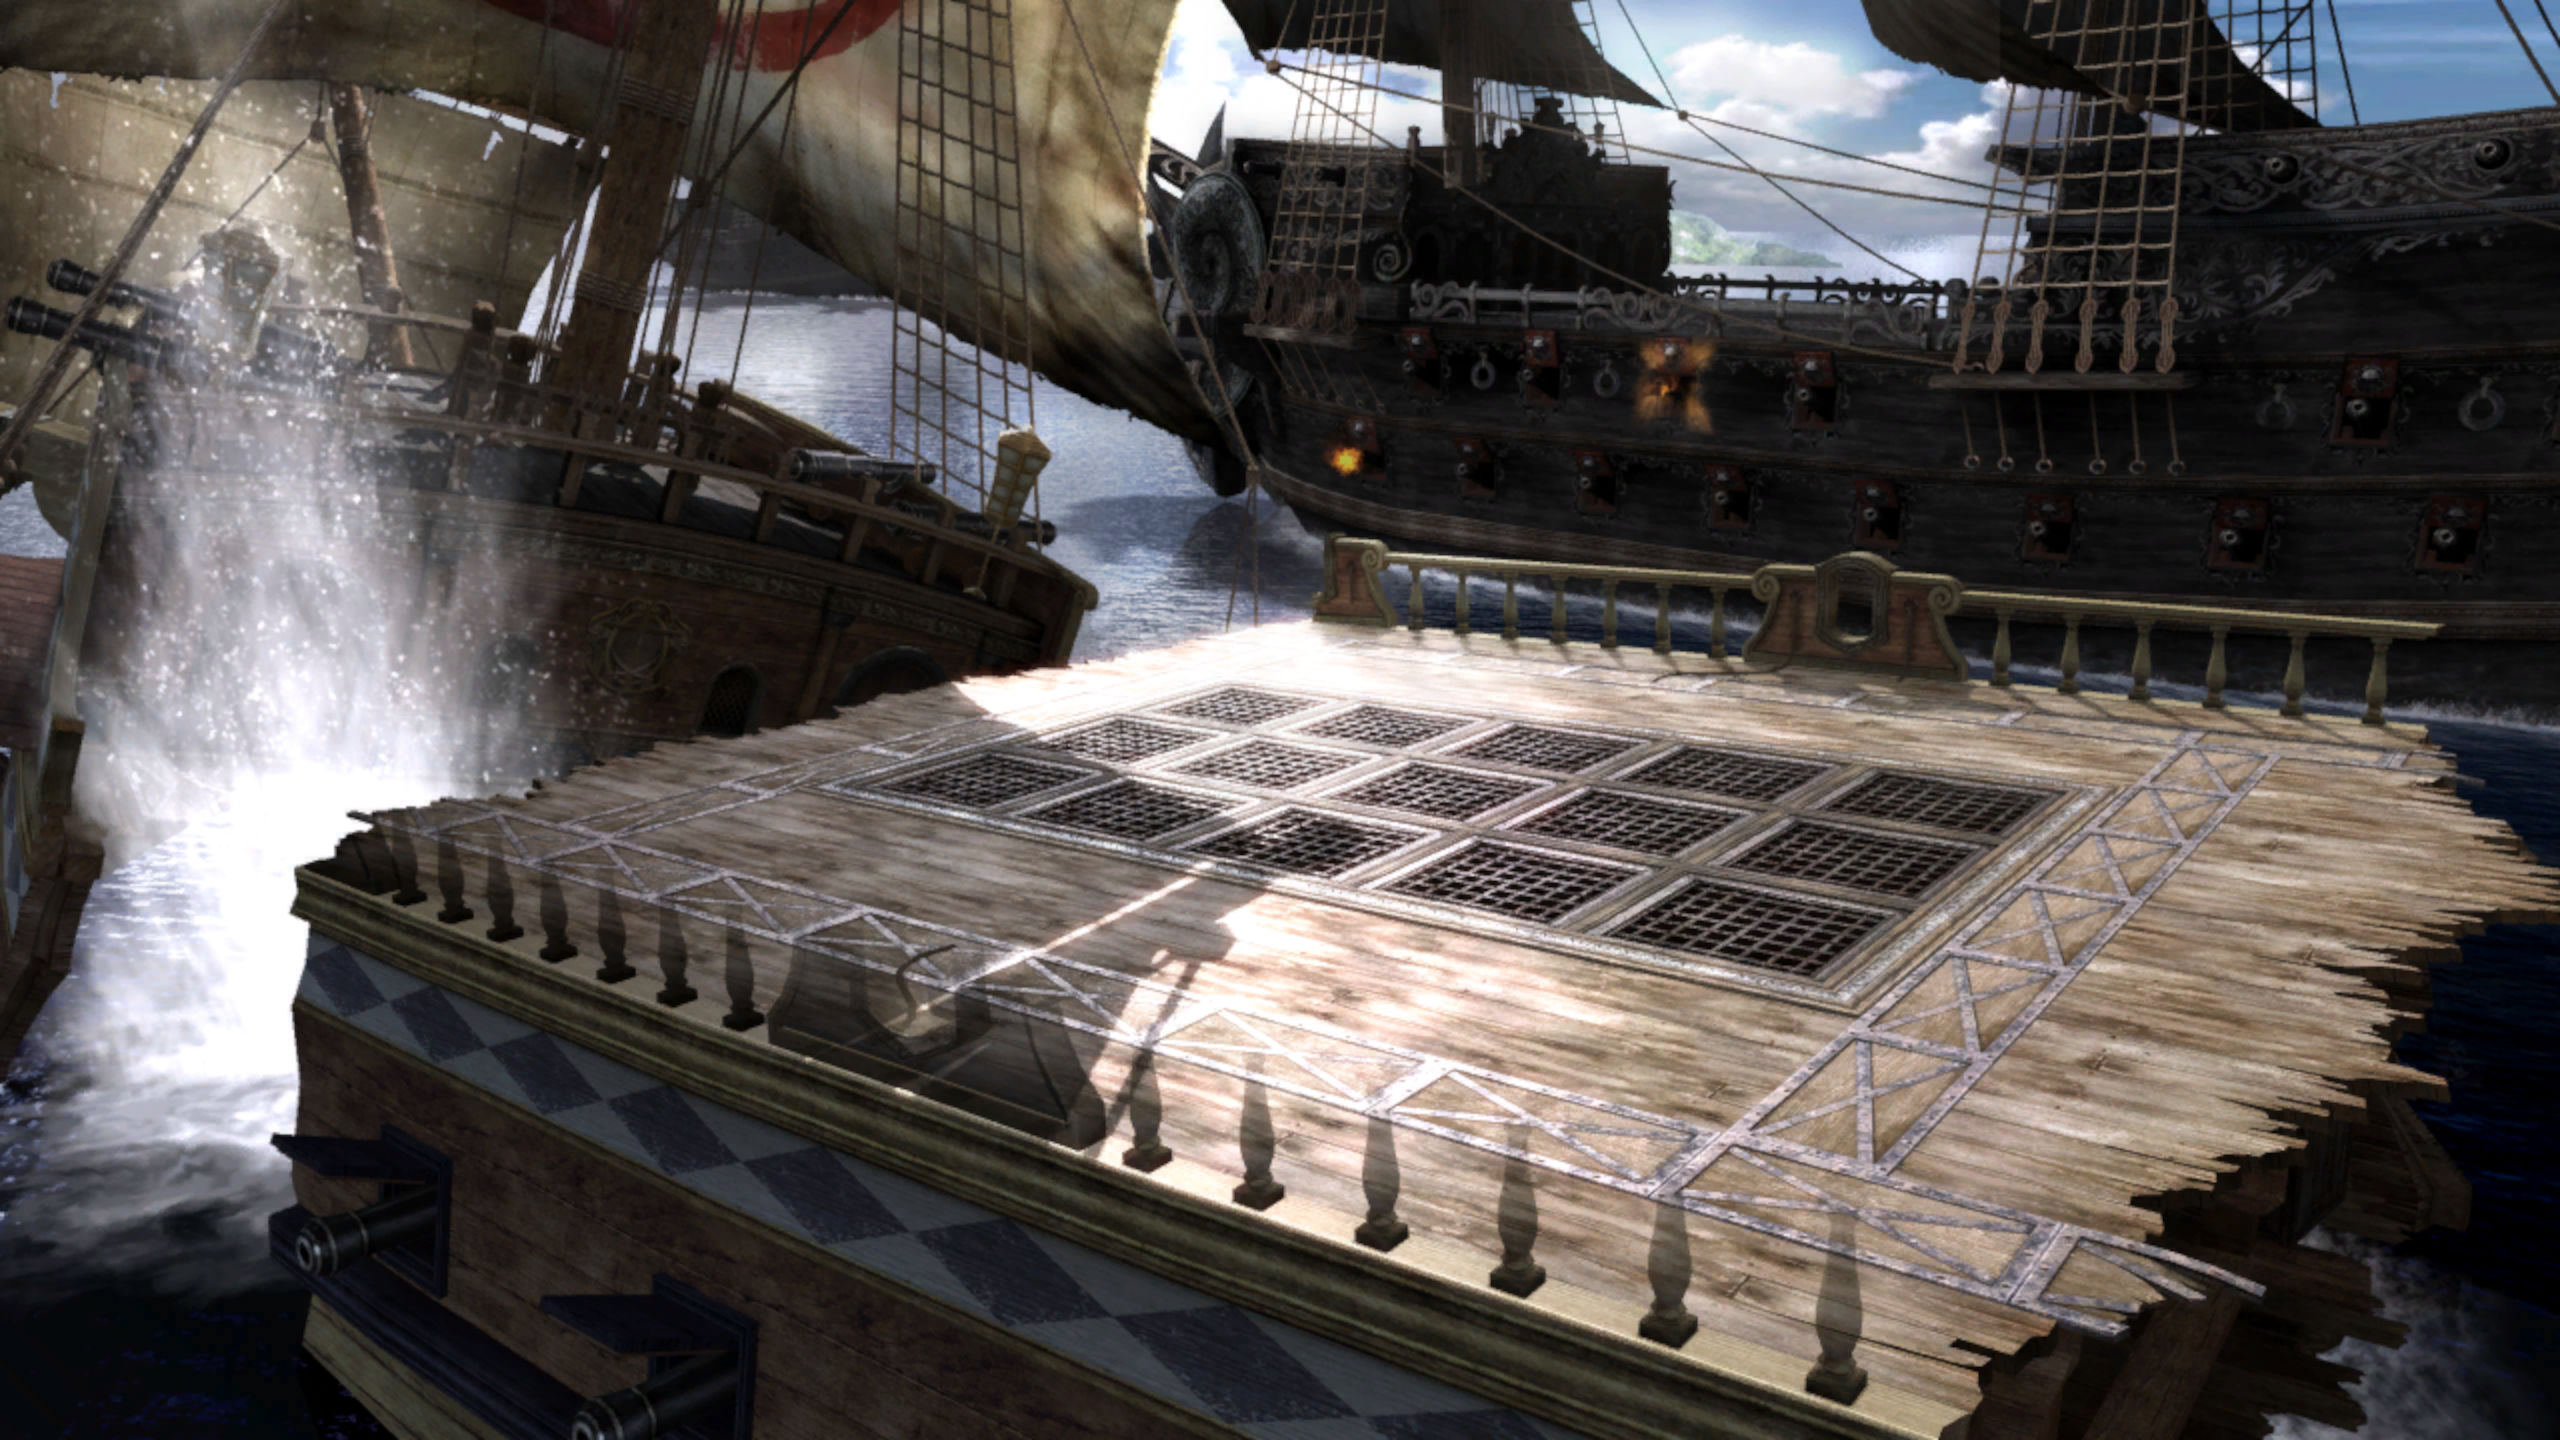 ghost pirate ship deck - photo #6